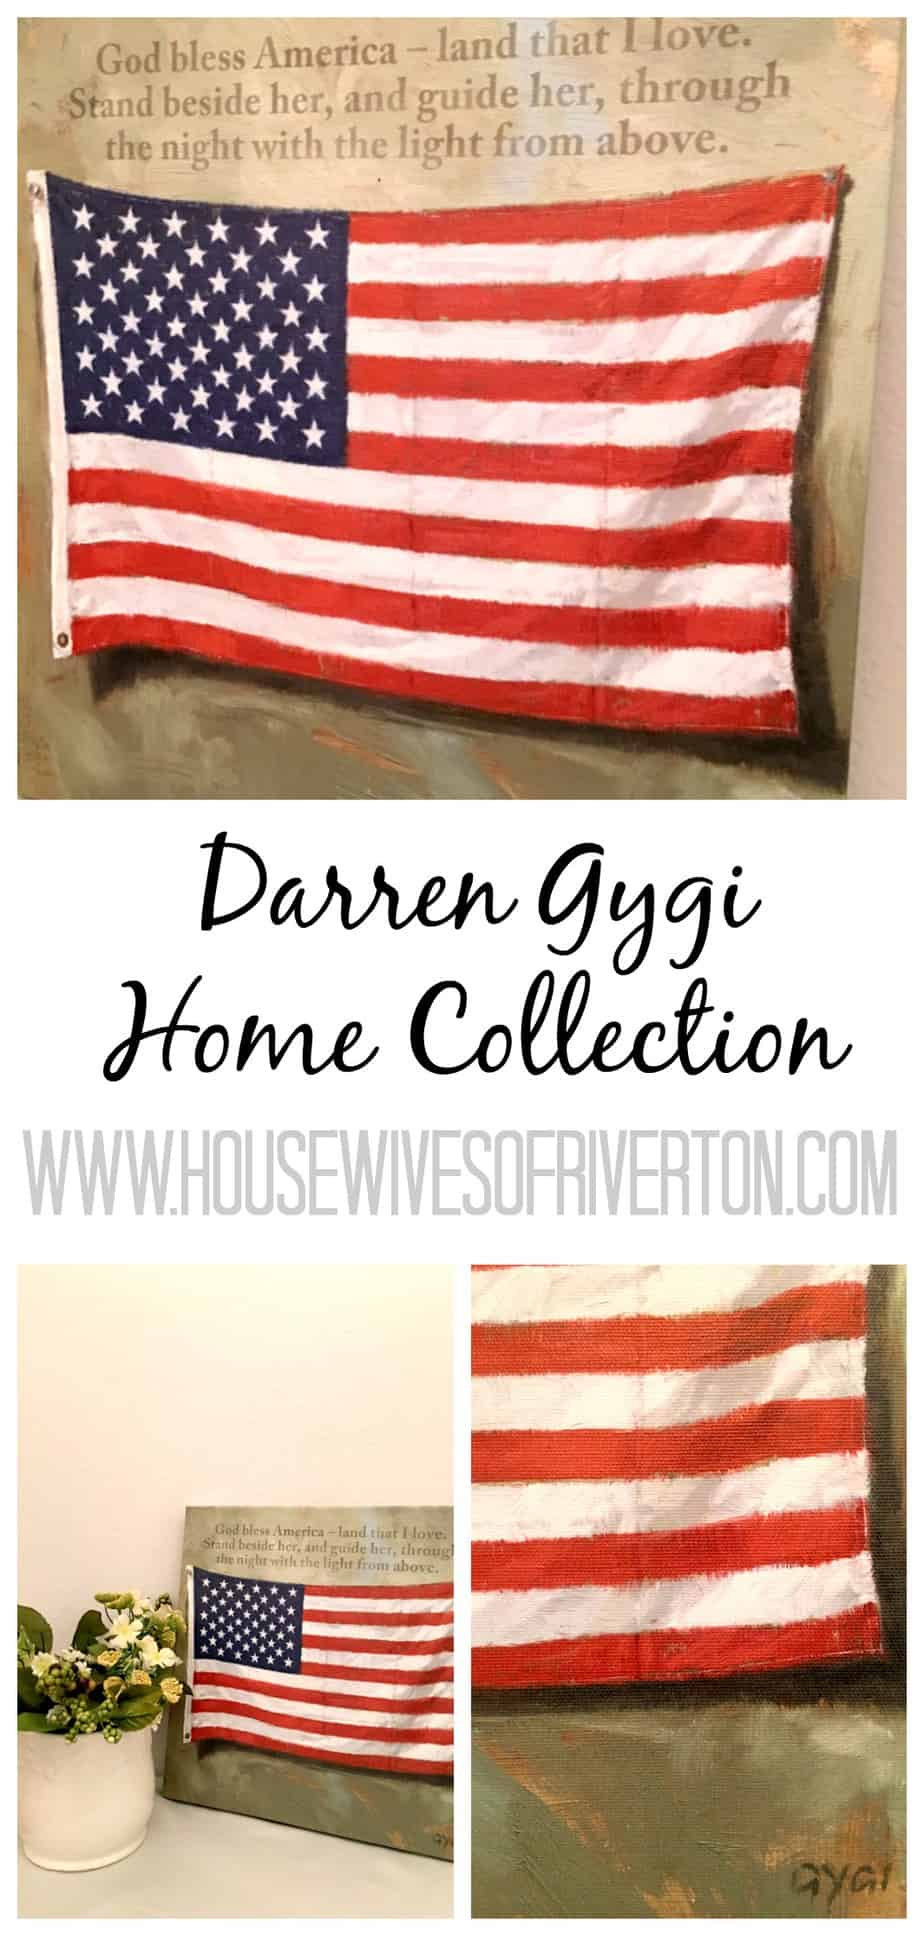 Darren Gygi Home Collection Perfect gifts for Mother's Day!! Discount code and a giveaway! | www.housewivesofriverton.com